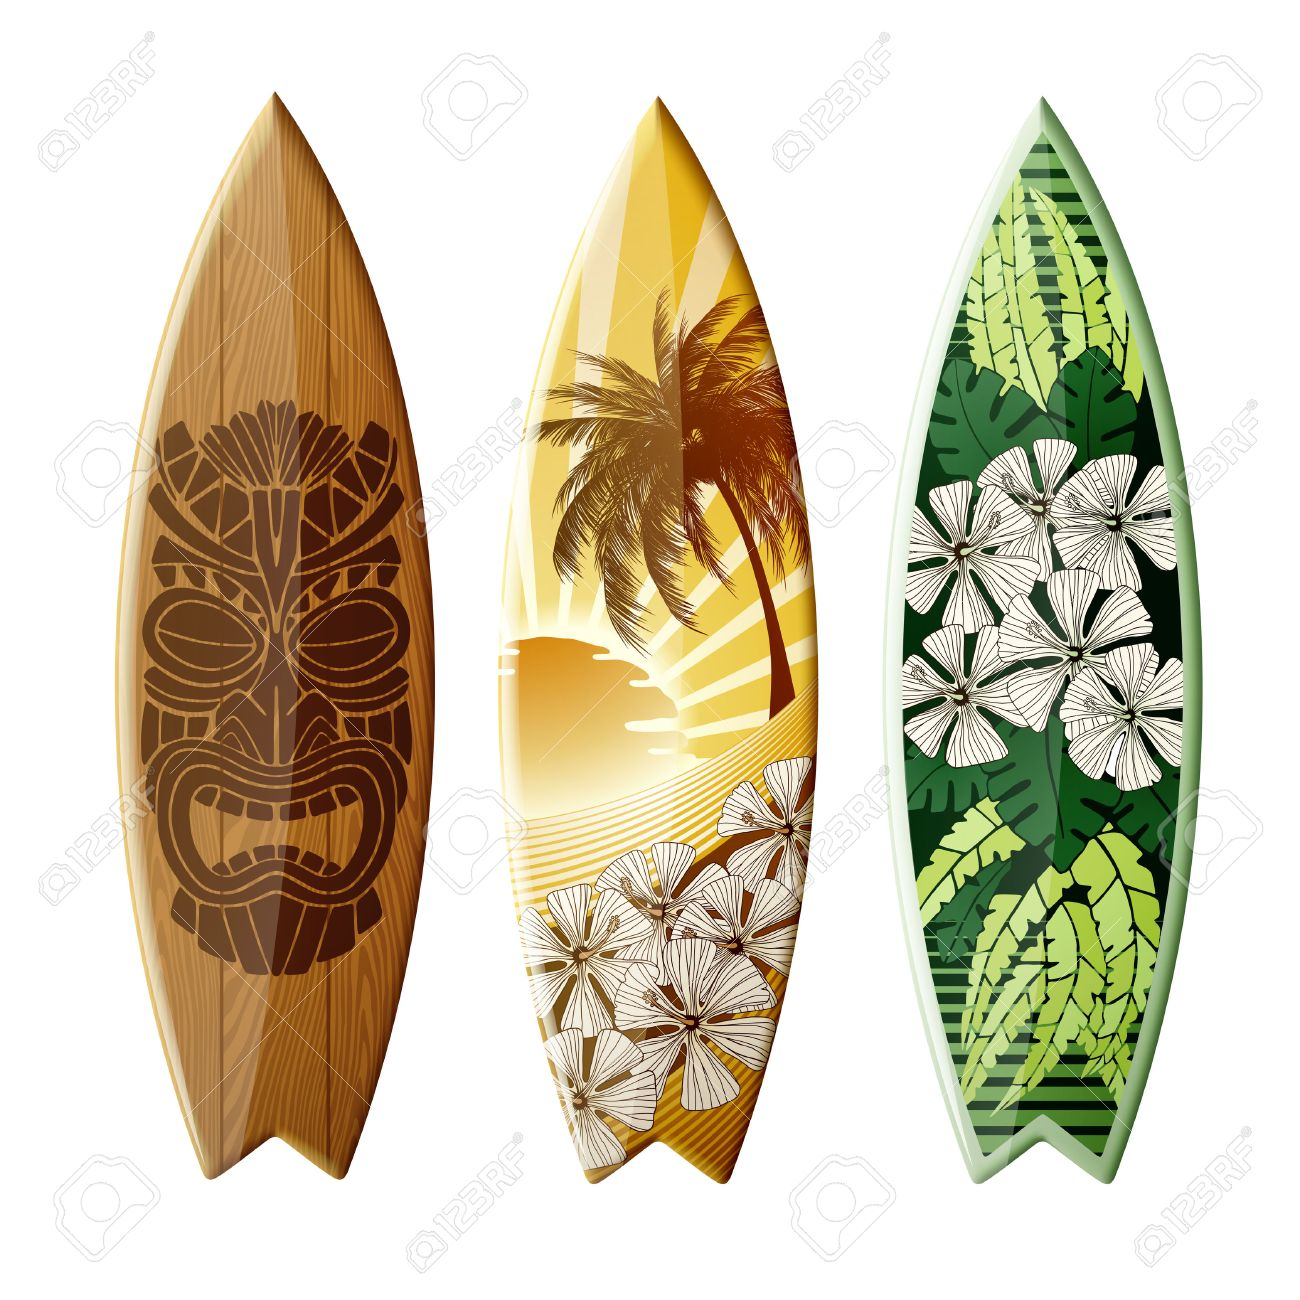 Set Of Surfboards With Original Design Color Print EPS 10 Contains Transparency